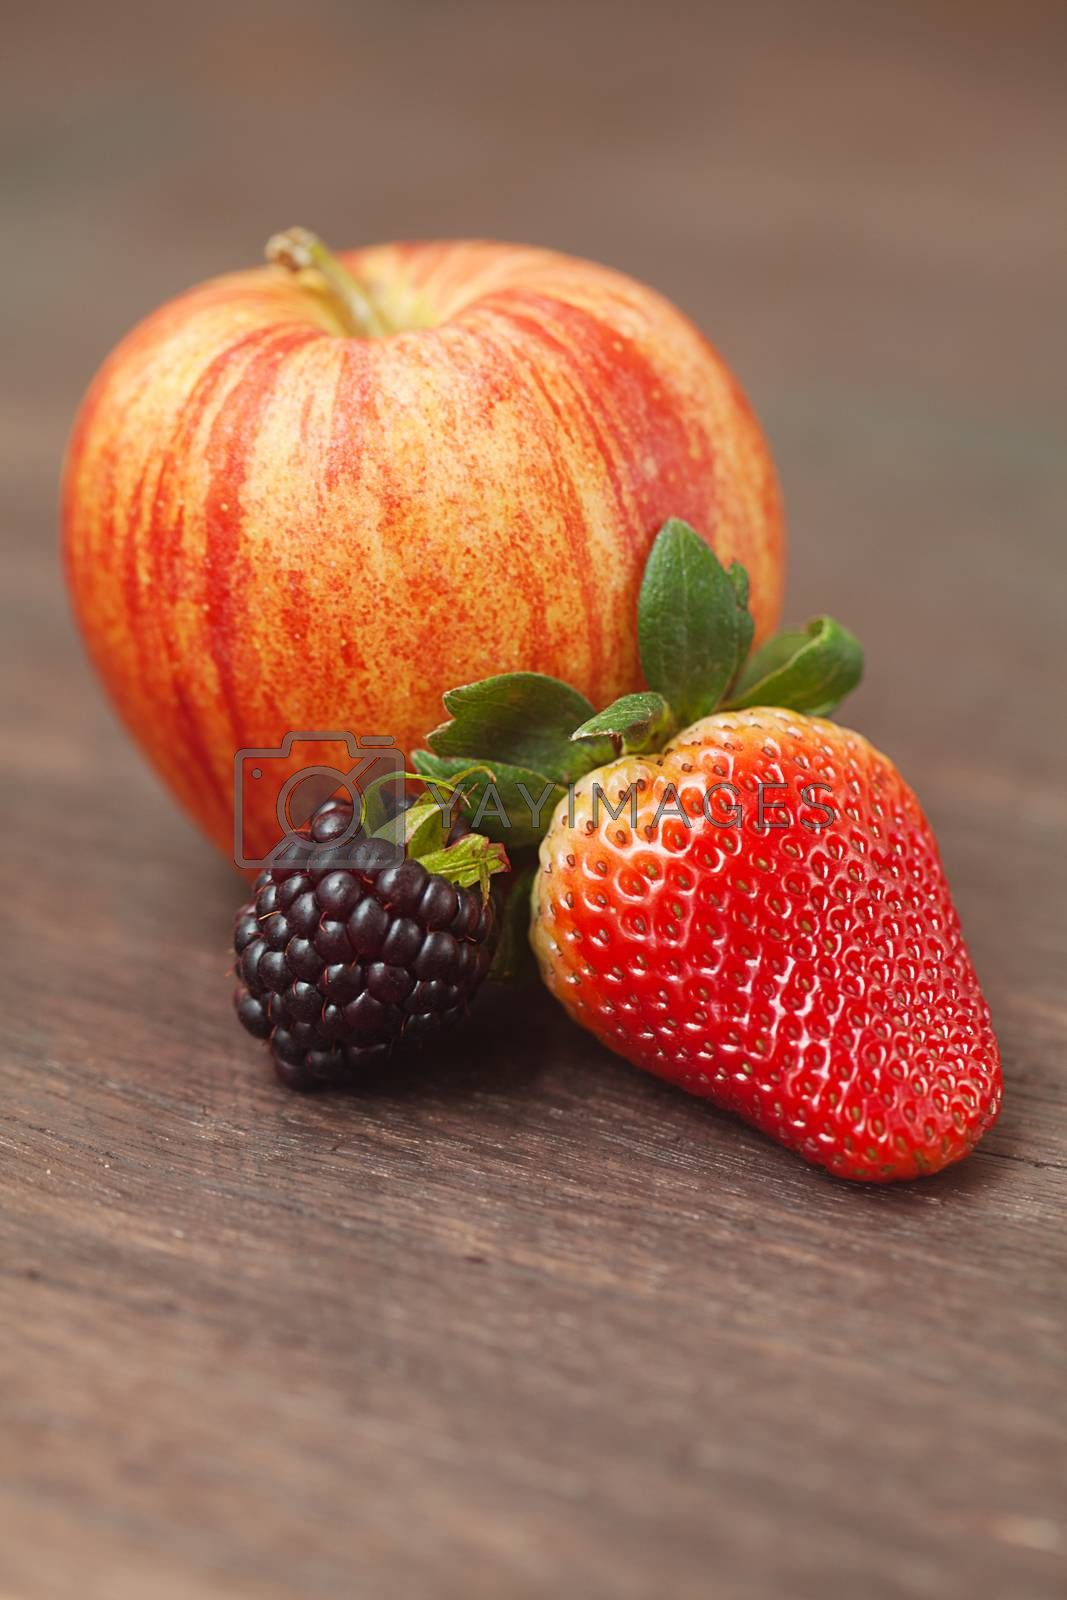 juicy apple,blackberry and strawberry on a wooden surface